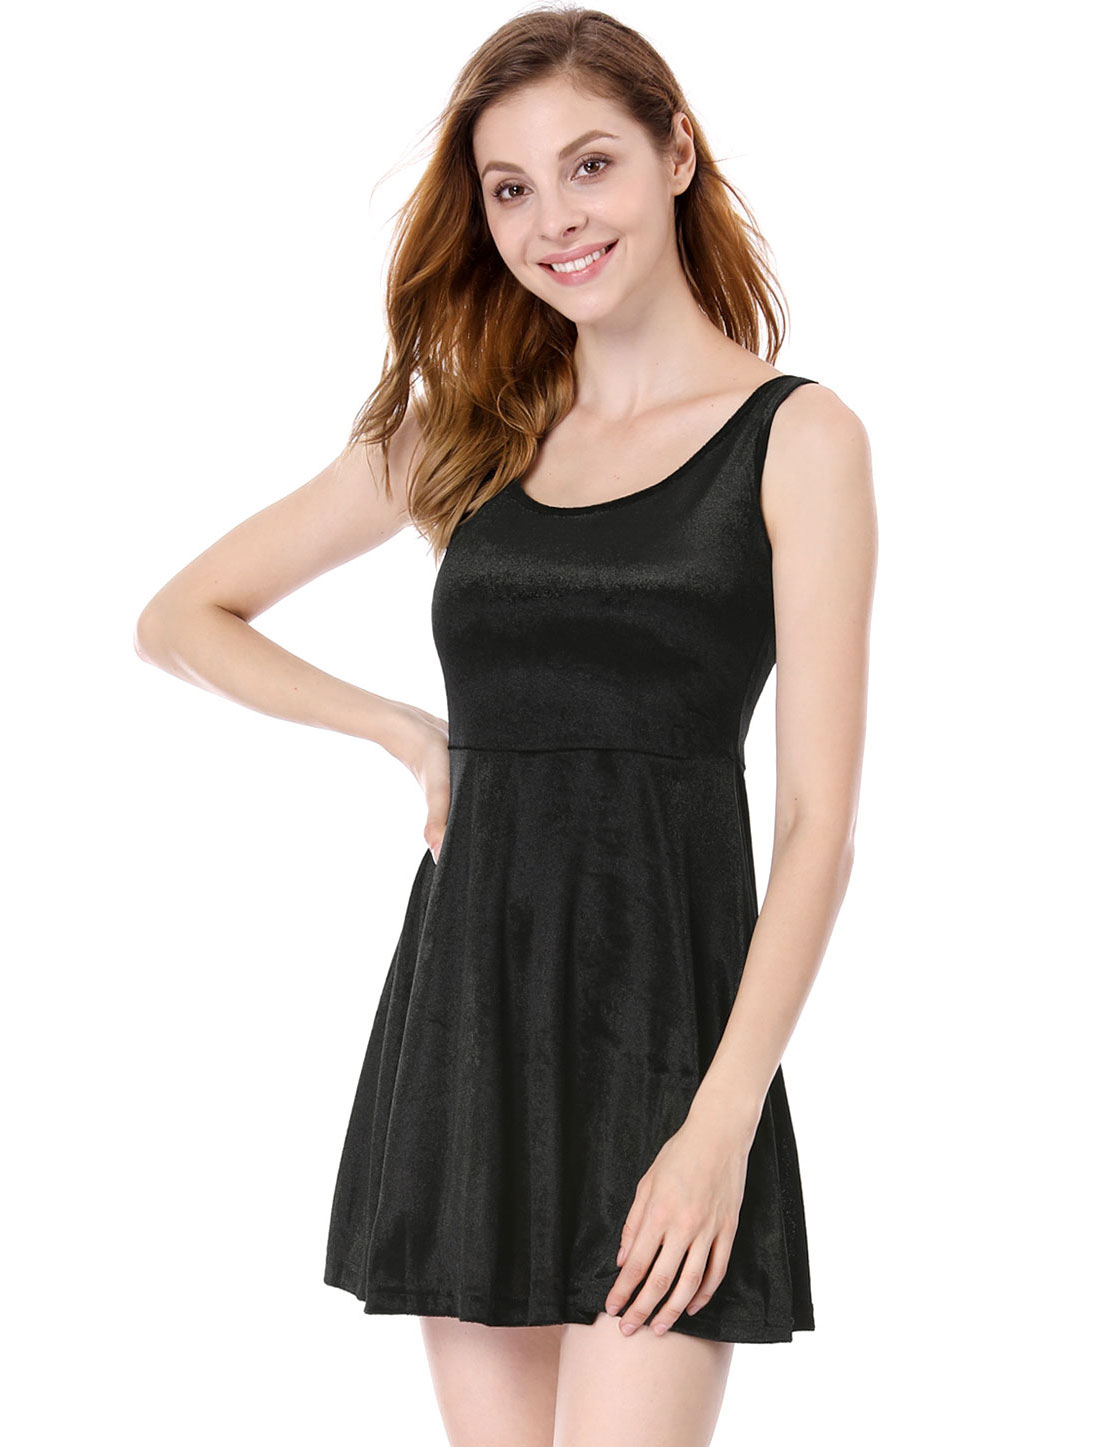 Women Black Soft Sleeveless Velvet Stretchy Mini Tank Dress XS